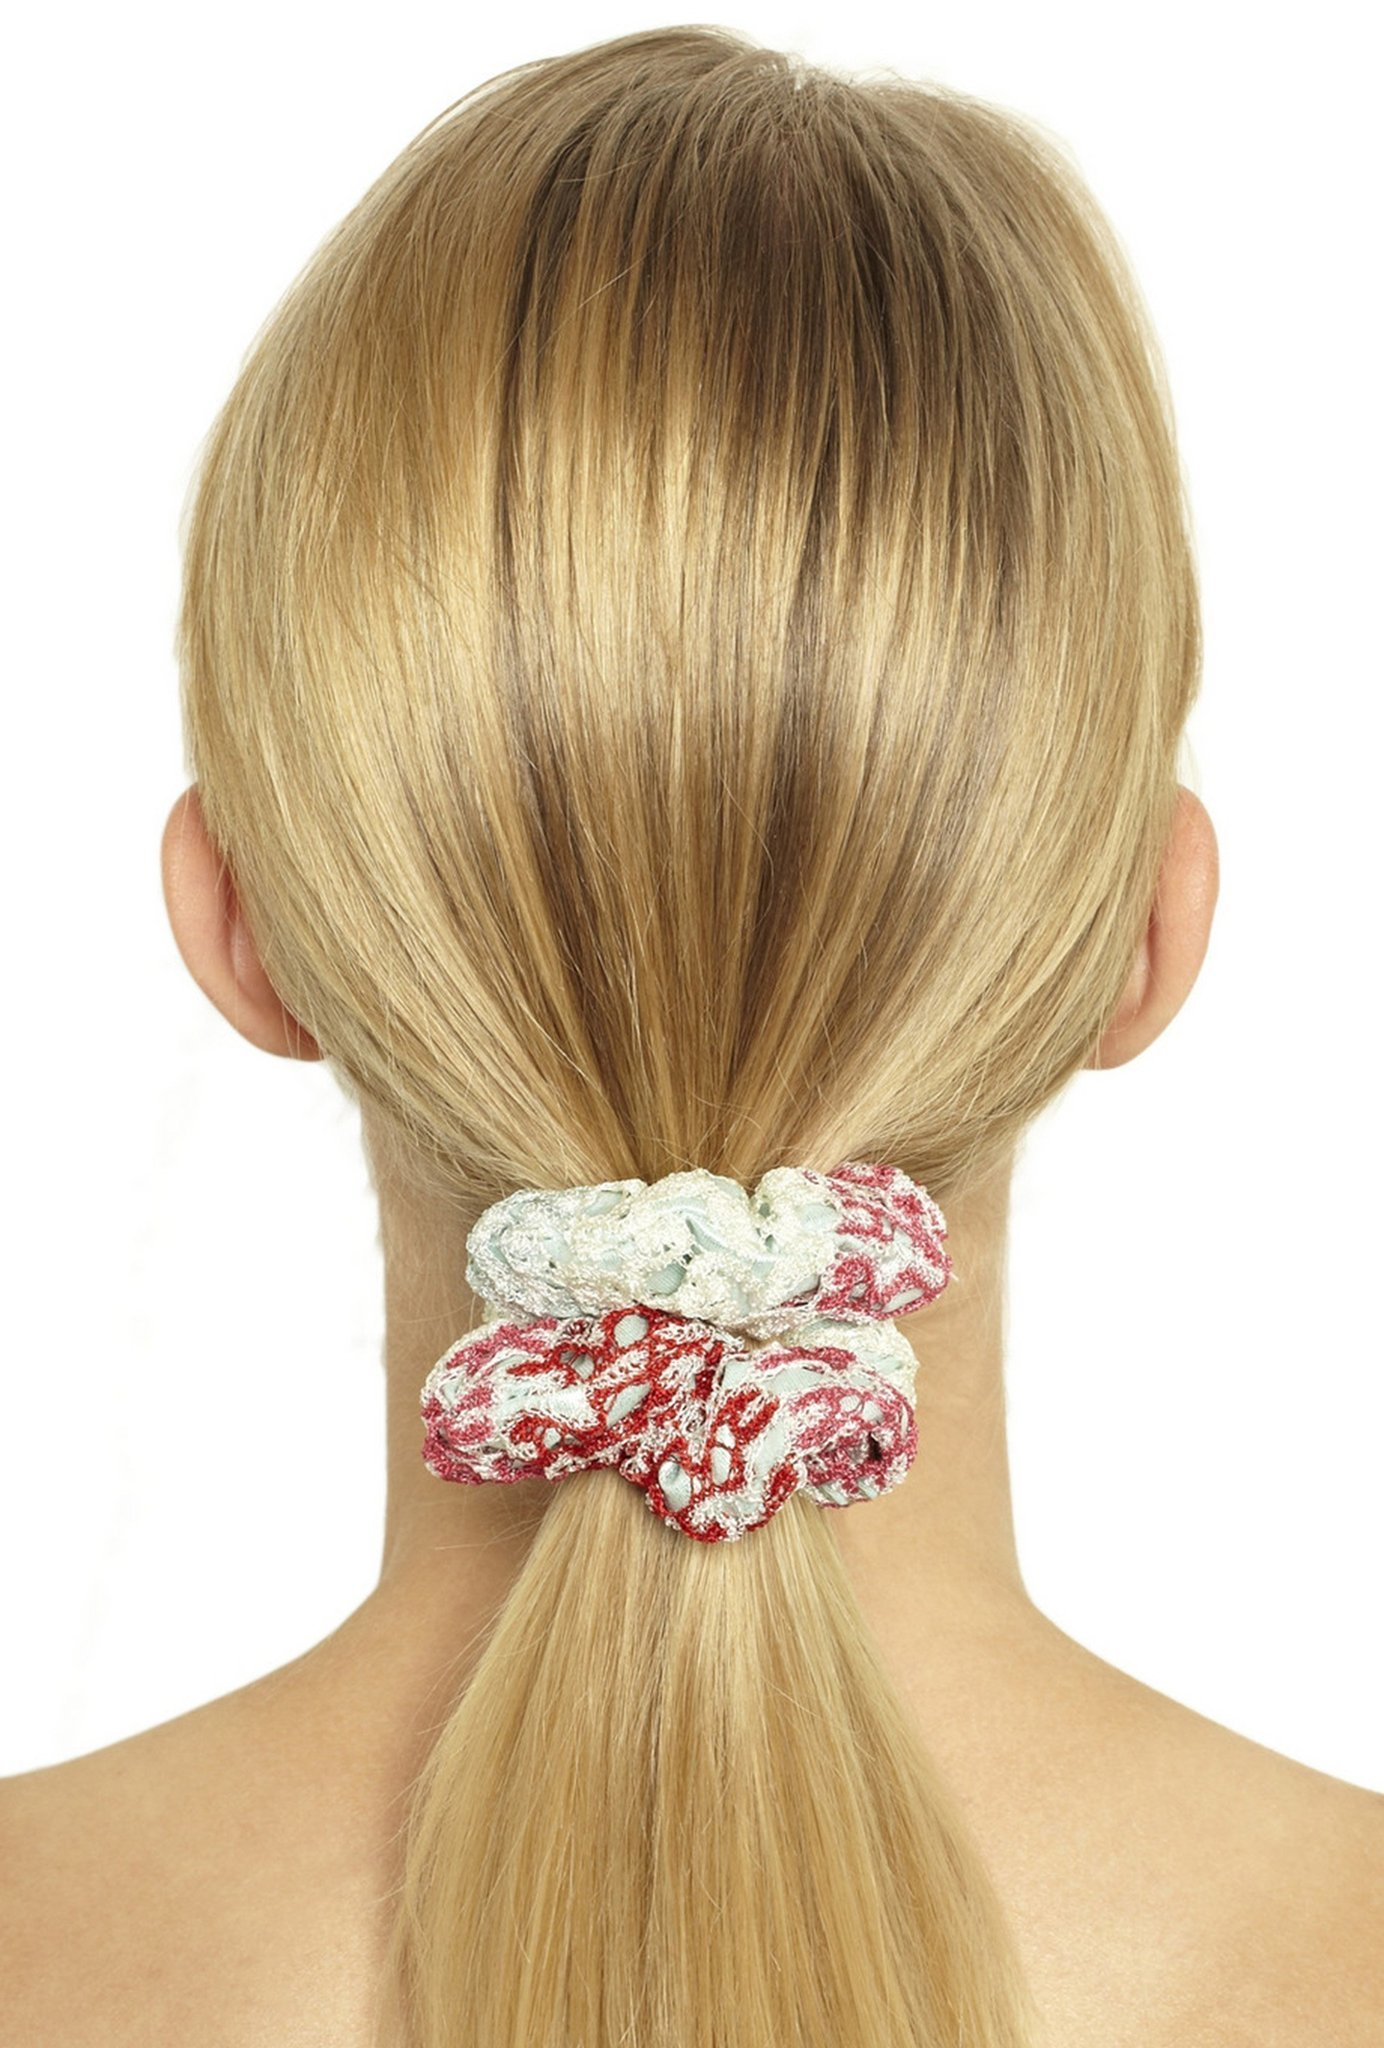 727a29315b1b12 Once-popular scrunchies are back in the fashion loop - Chicago Tribune